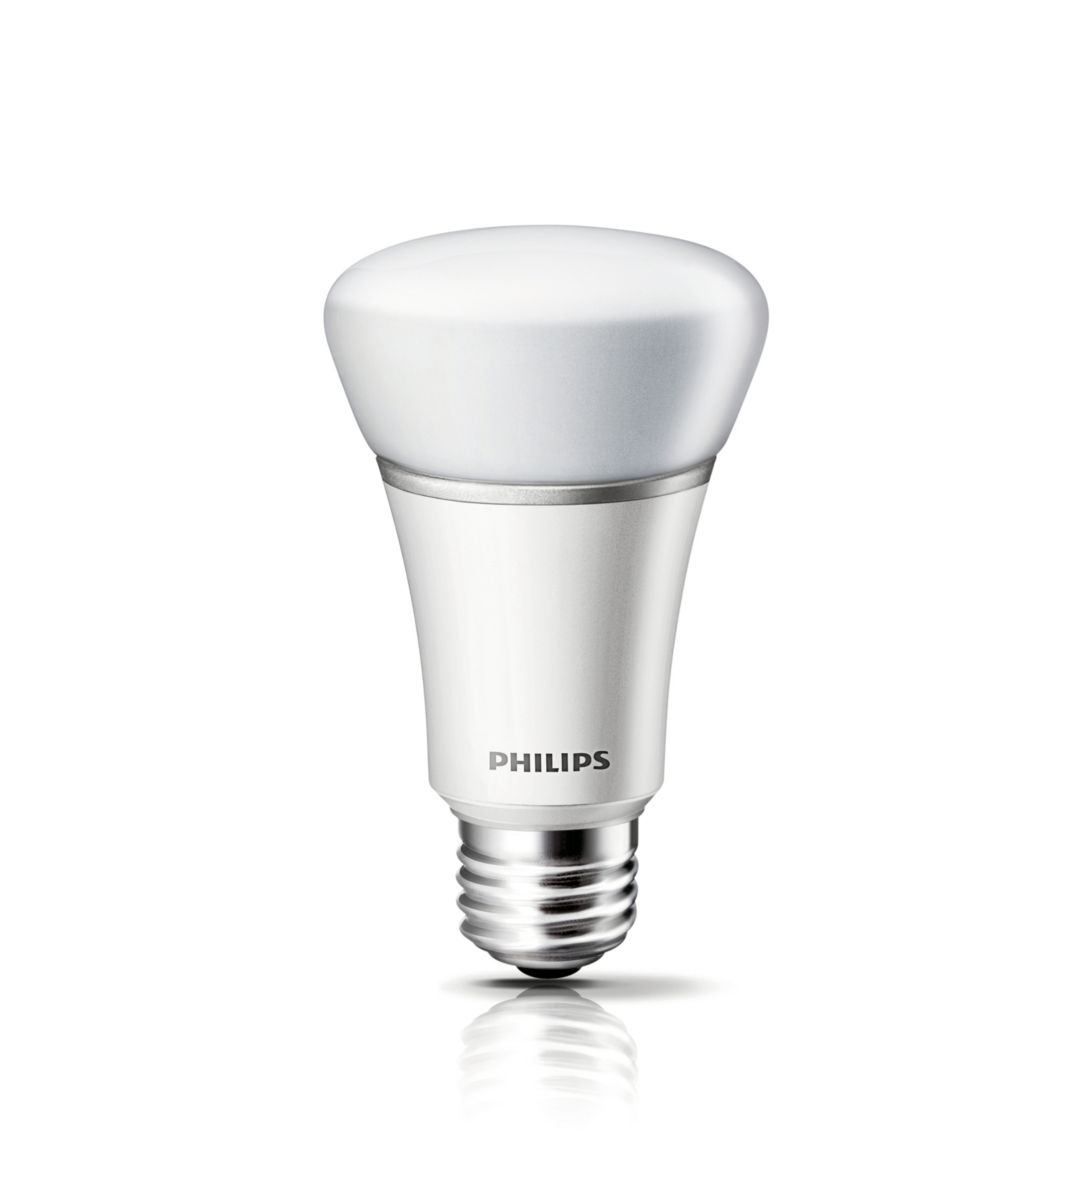 Masters Led Lighting Master Led Lamps Philips Lighting